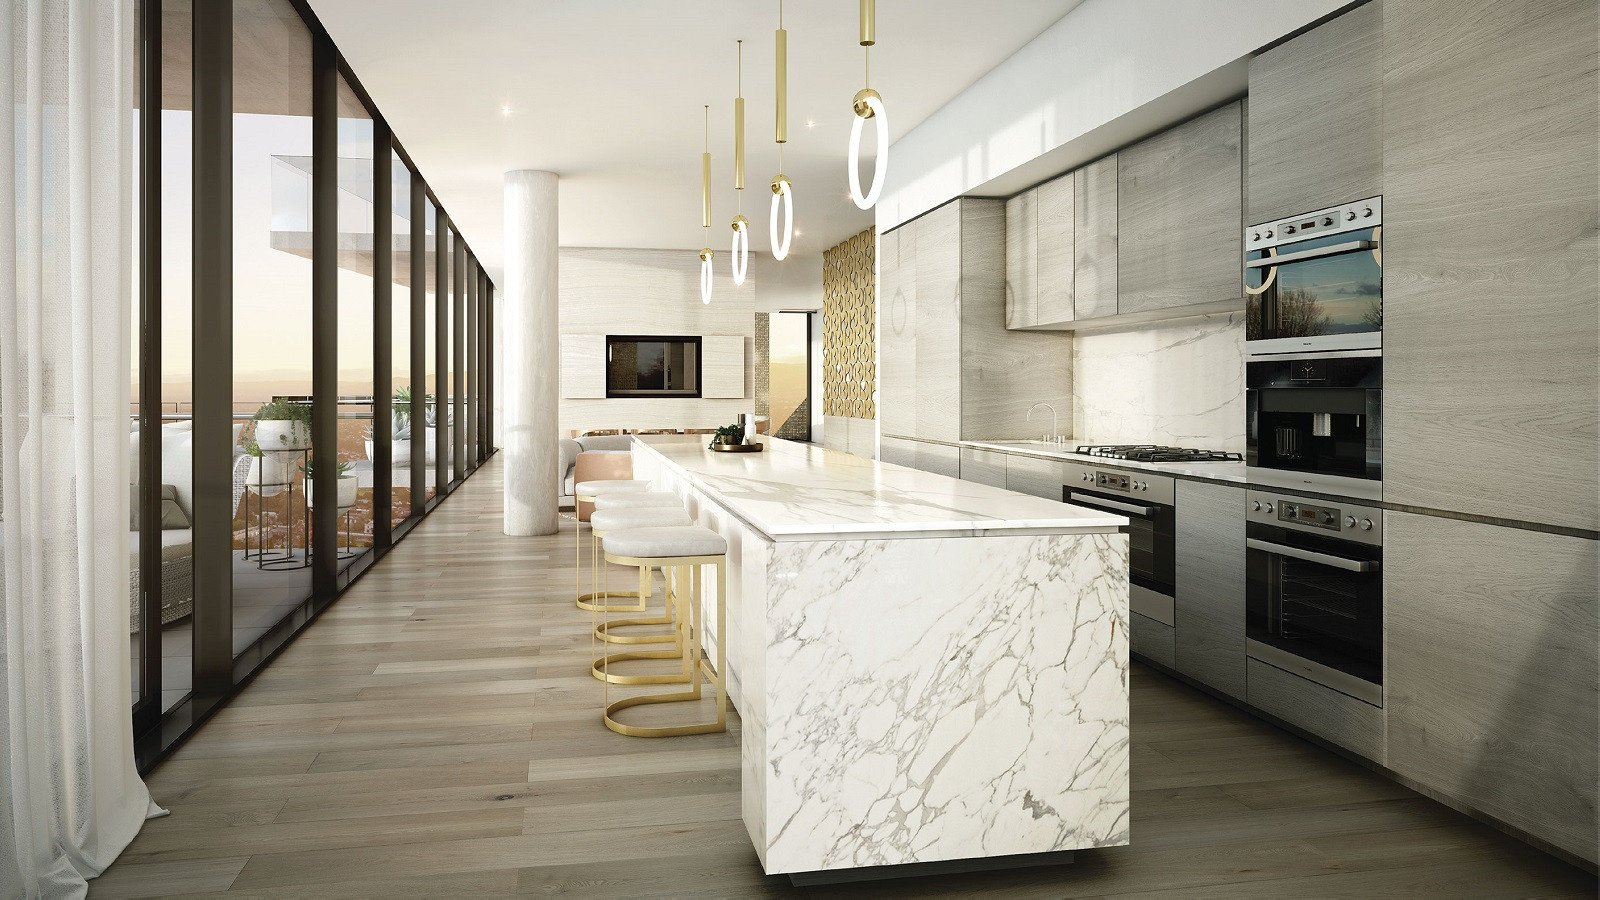 Realm Apartments-image-8